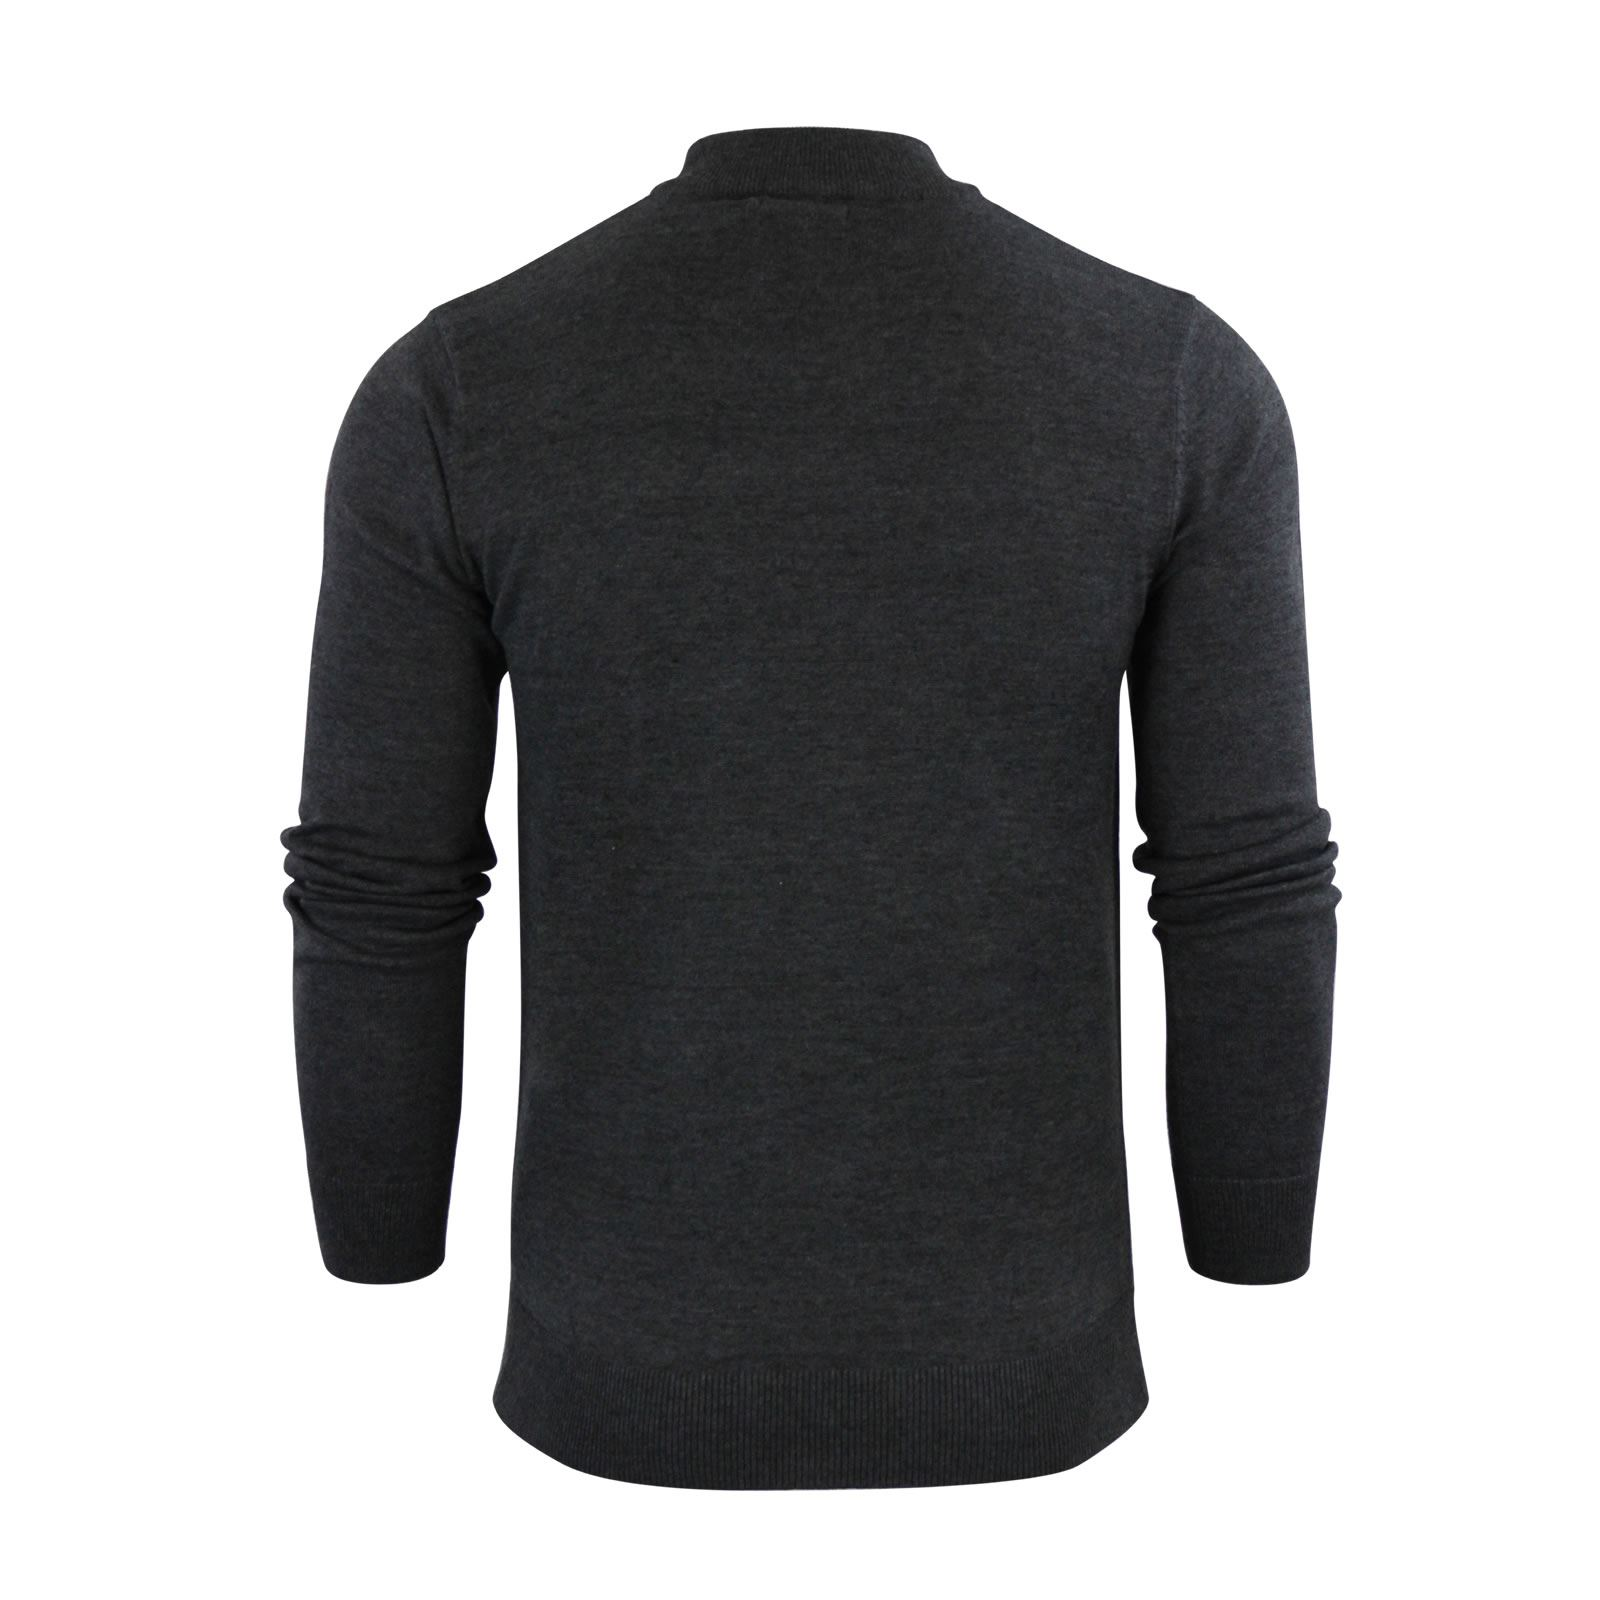 Mens-Jumper-Brave-Soul-Turtle-Neck-Cotton-Pull-Over-Sweater thumbnail 12